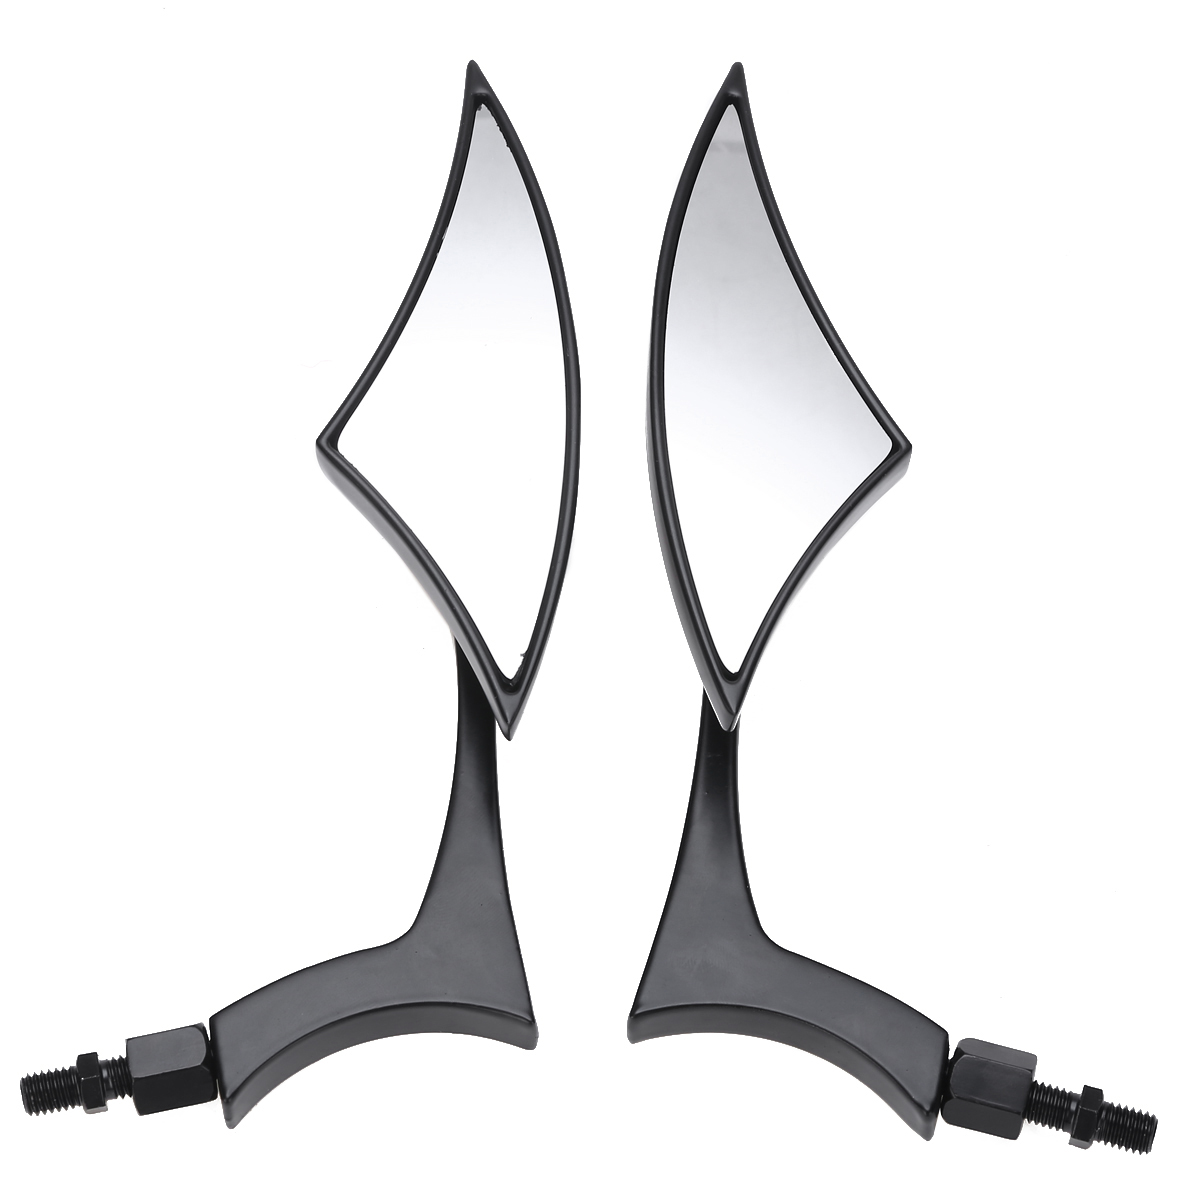 For Motocycle Cruiser Chopper 1Pair Rearview Side Mirror ABS Shell Clear Glass Black CNC Aluminum With 8/10MM Bolts Treyues